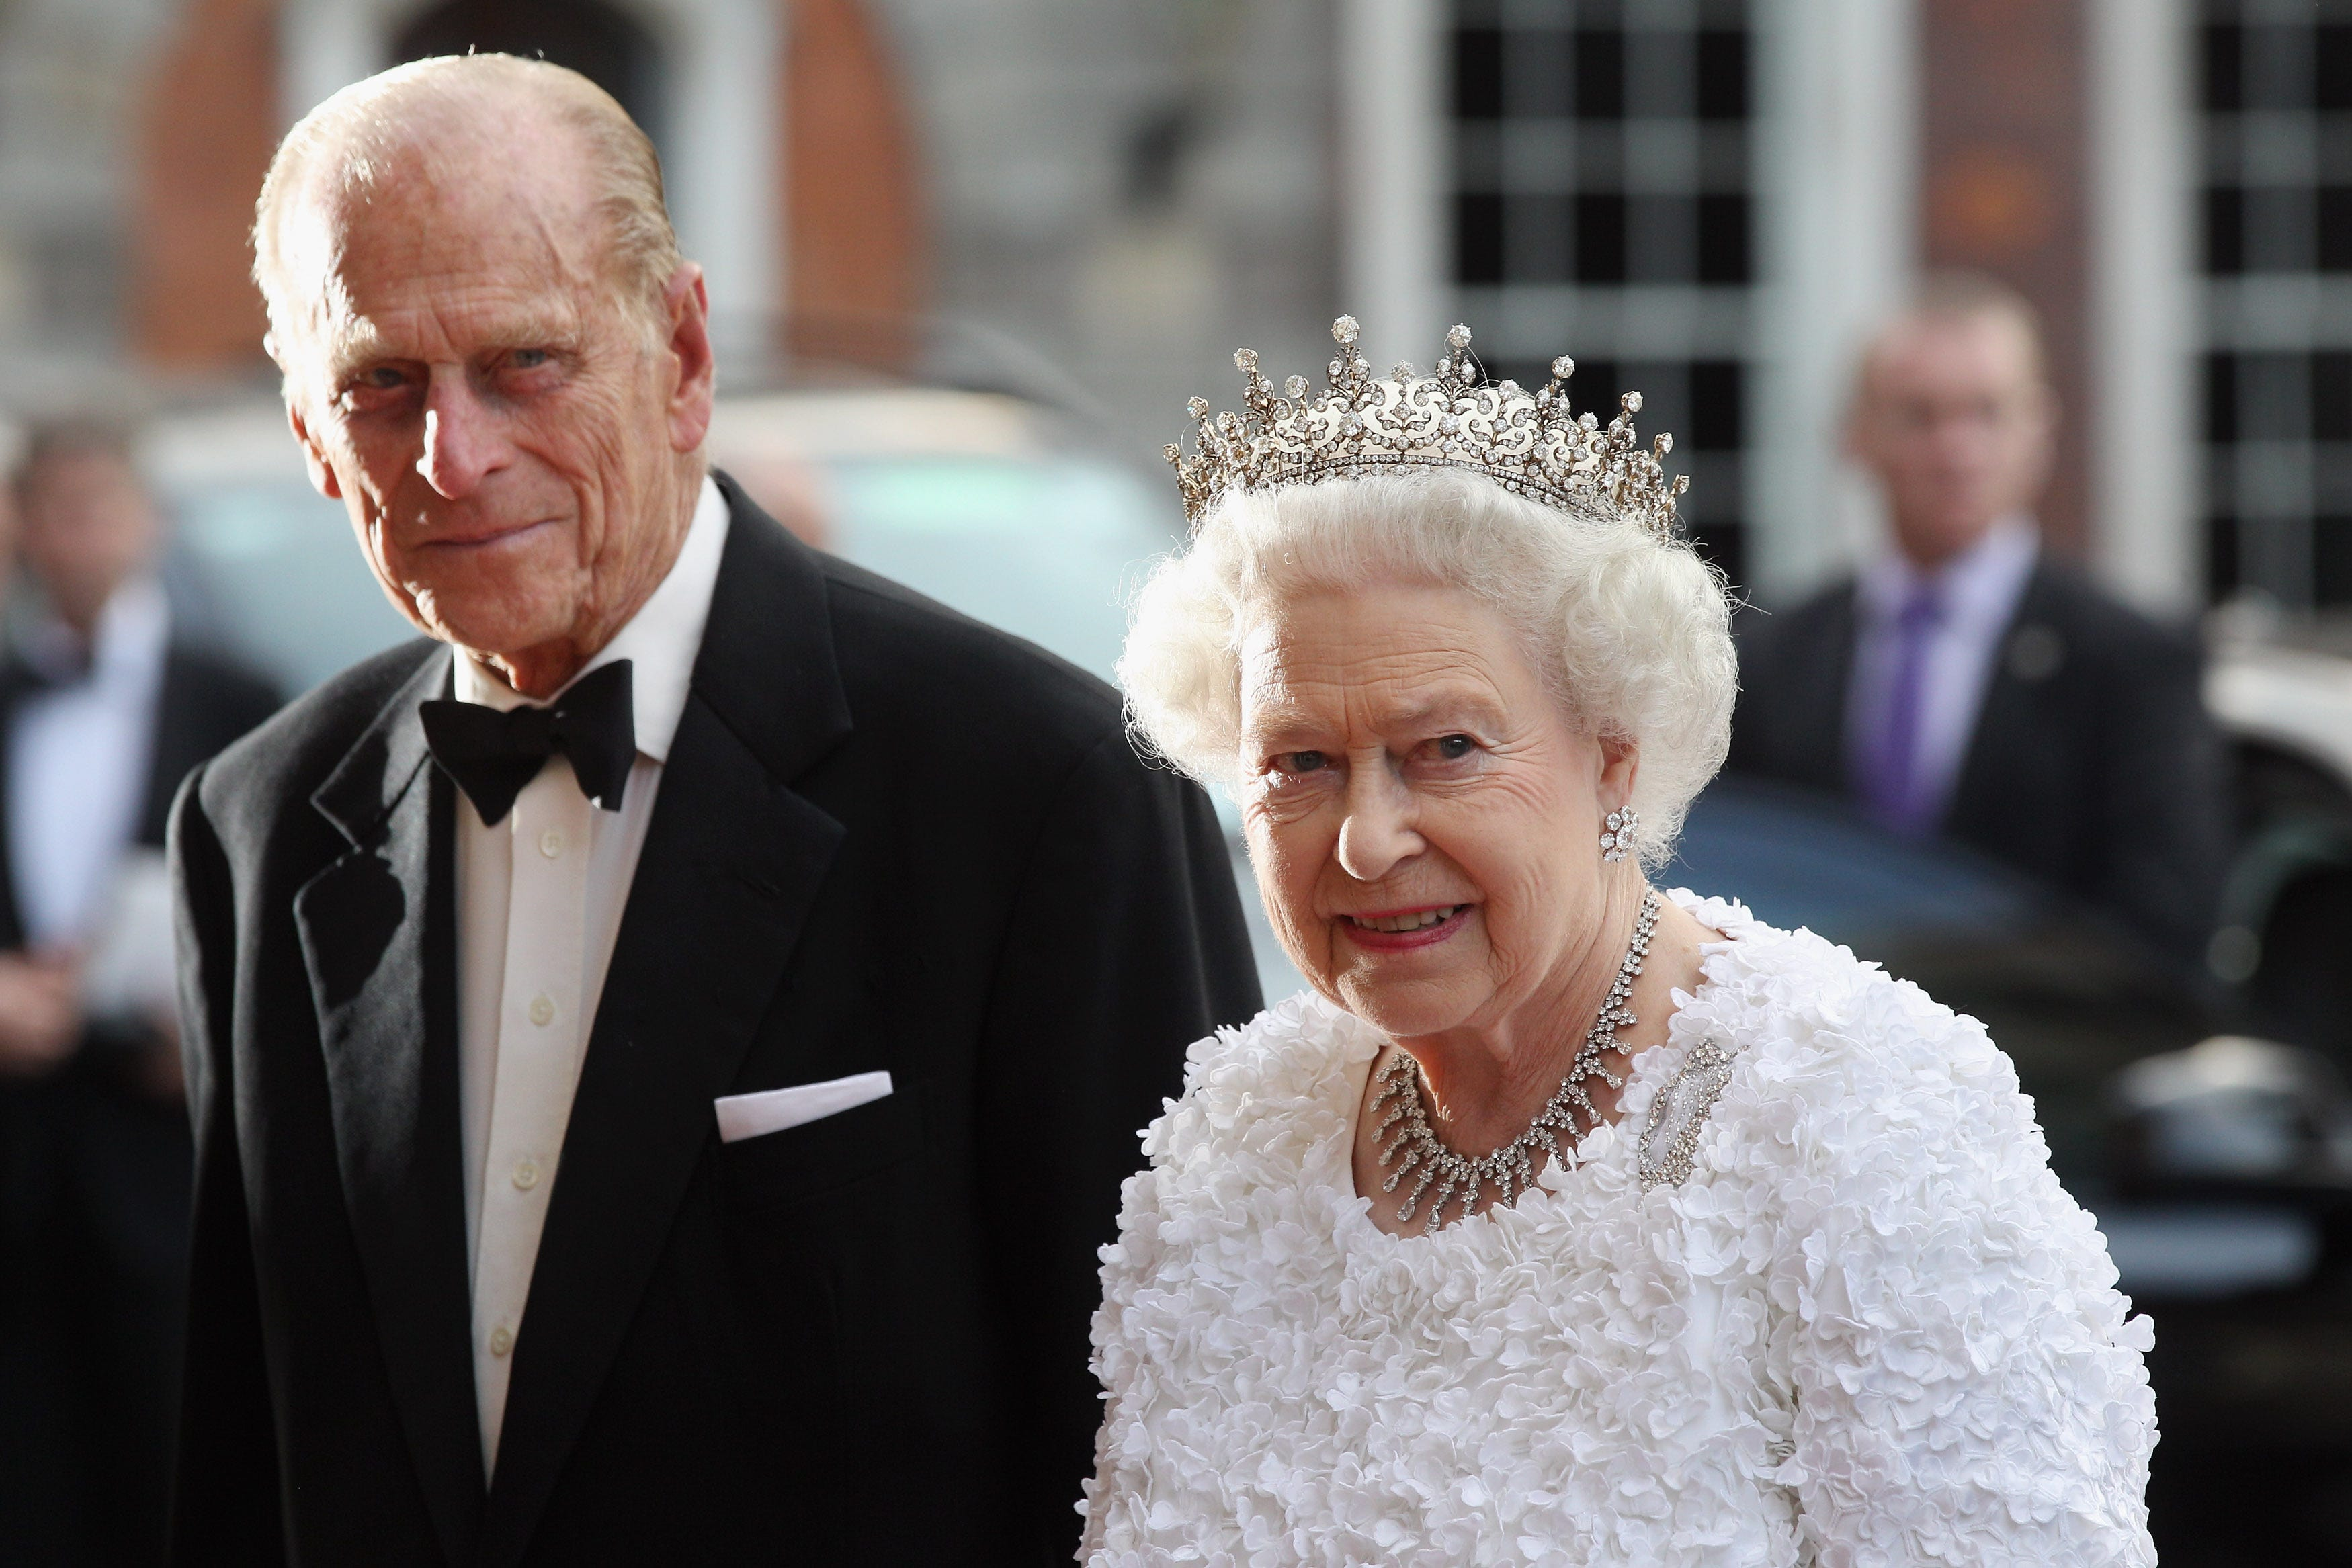 Police chastise Prince Philip for driving without seatbelt, just two days after crash